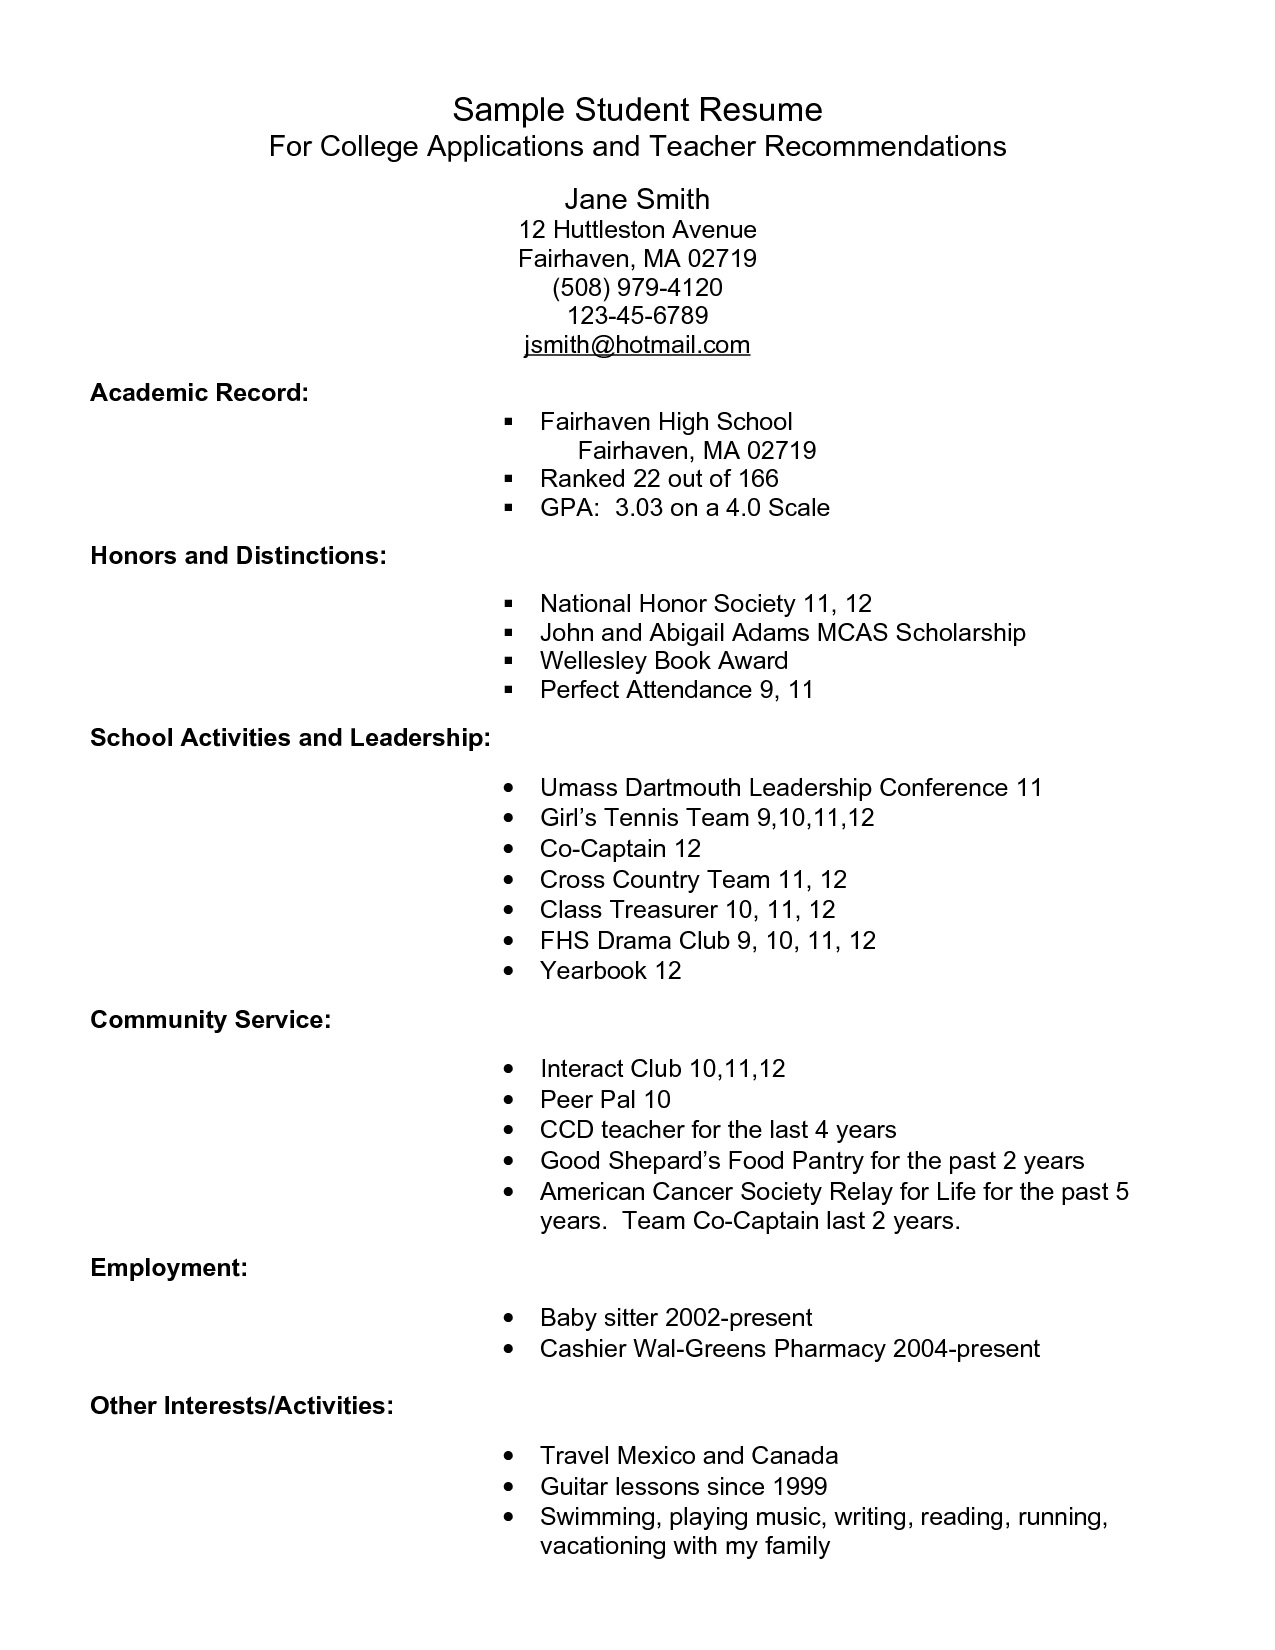 004 Impressive College Admission Resume Template Photo  Microsoft Word Application DownloadFull